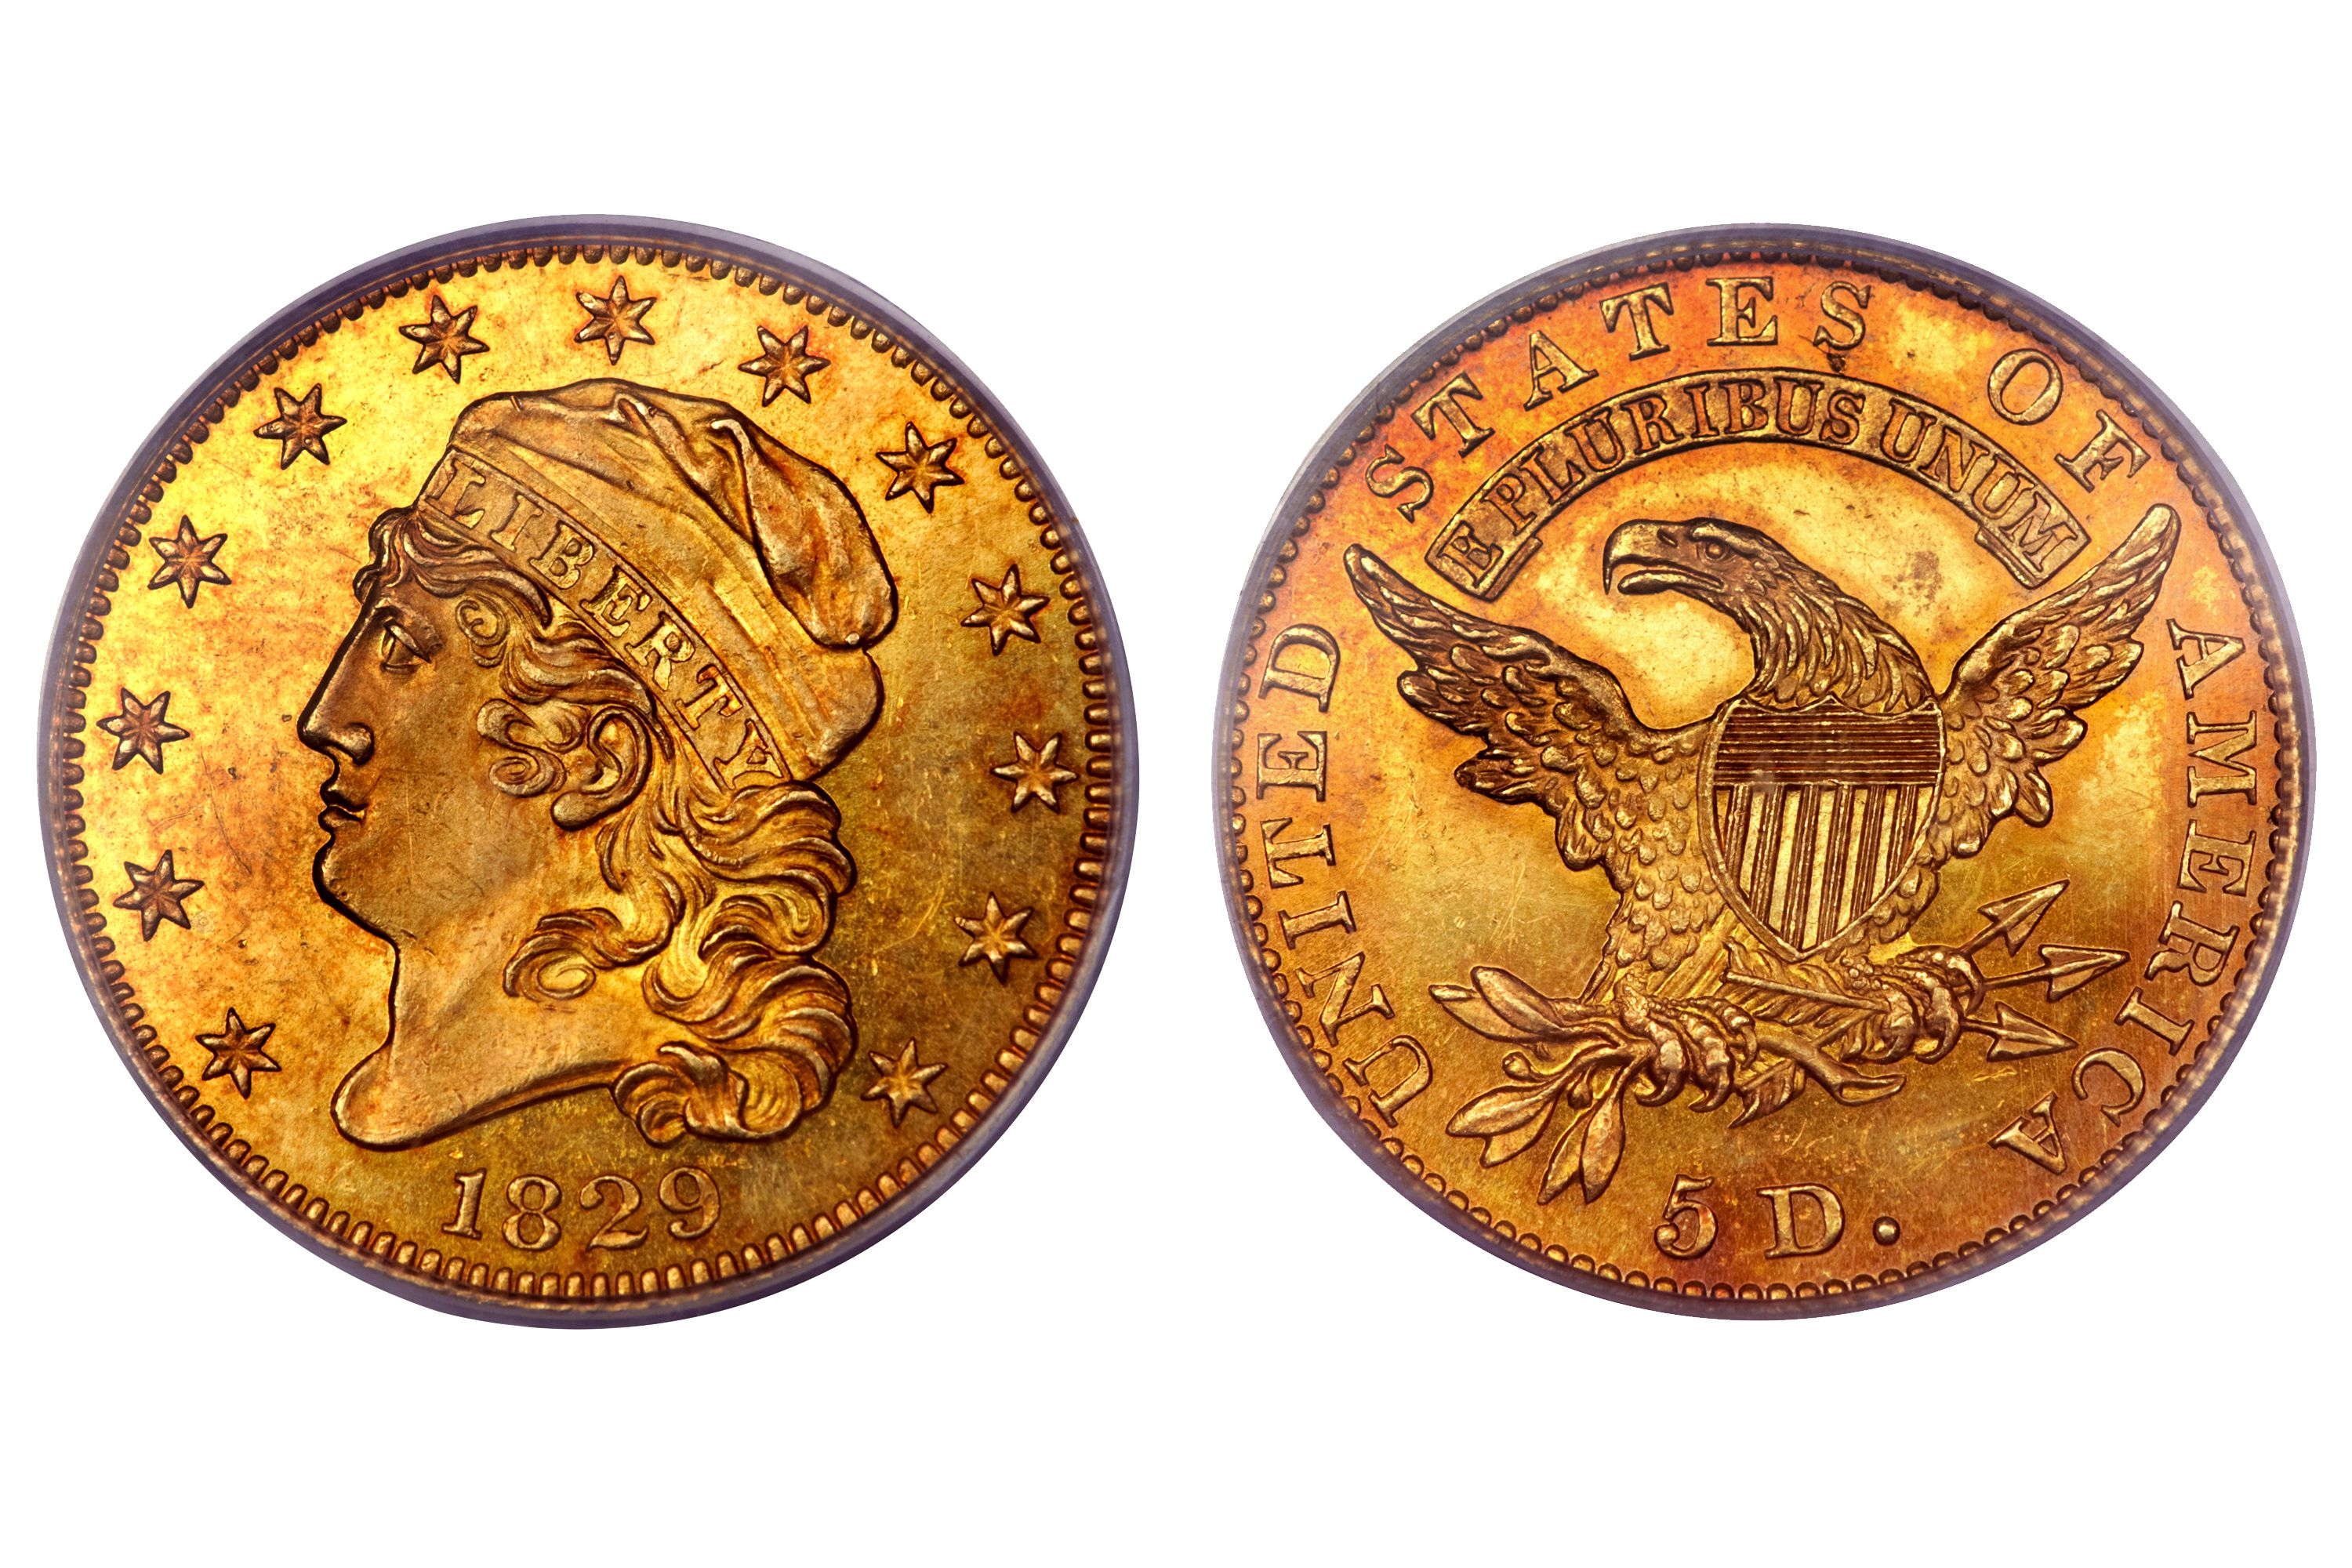 1829 Proof Capped Bust $5 Gold Half Eagle - Large Date